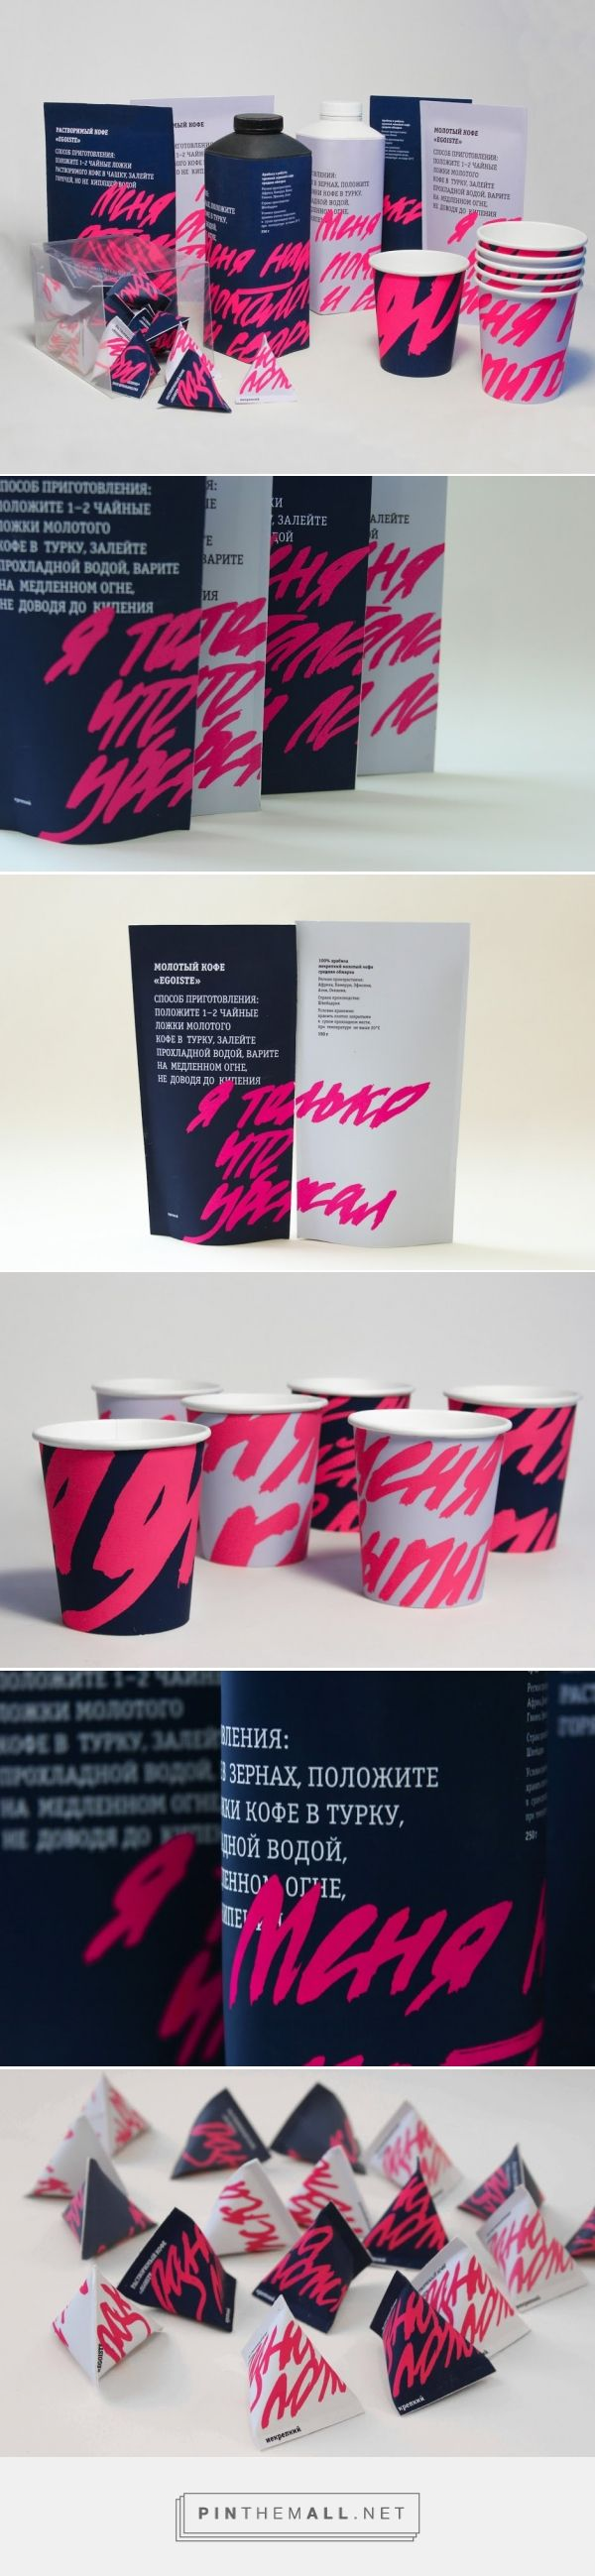 Coffee Selfish (Student Project) -  Packaging of the World - Creative Package Design Gallery - http://www.packagingoftheworld.com/2016/05/coffee-selfish-student-project.html